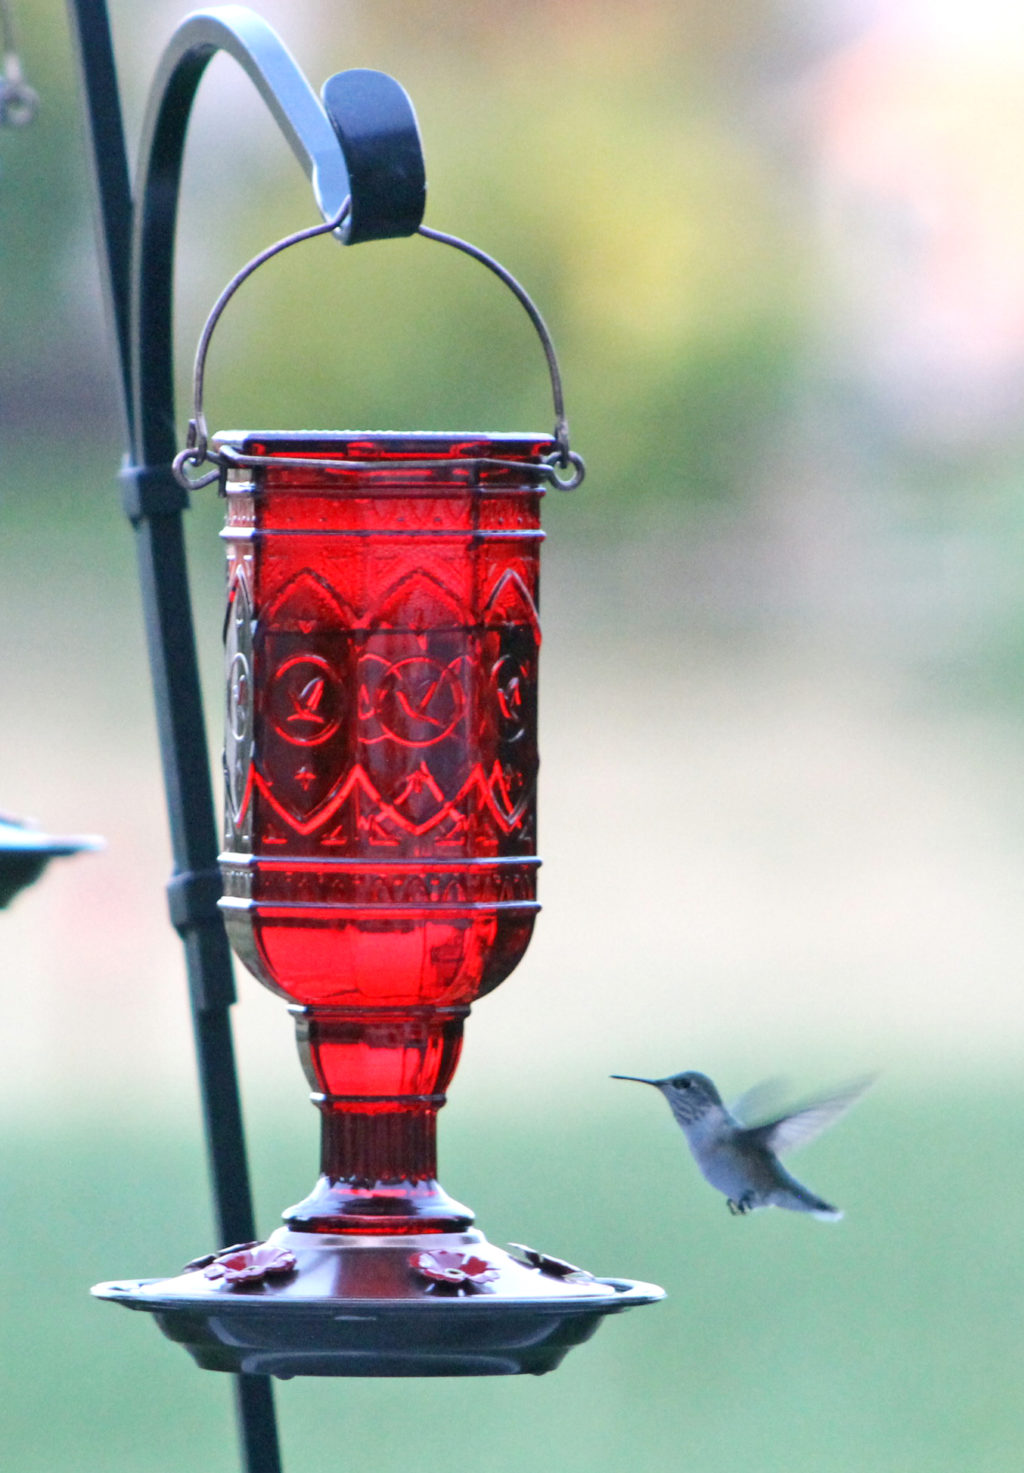 hummingbird flying toward More Birds red jewel hummingbird feeder